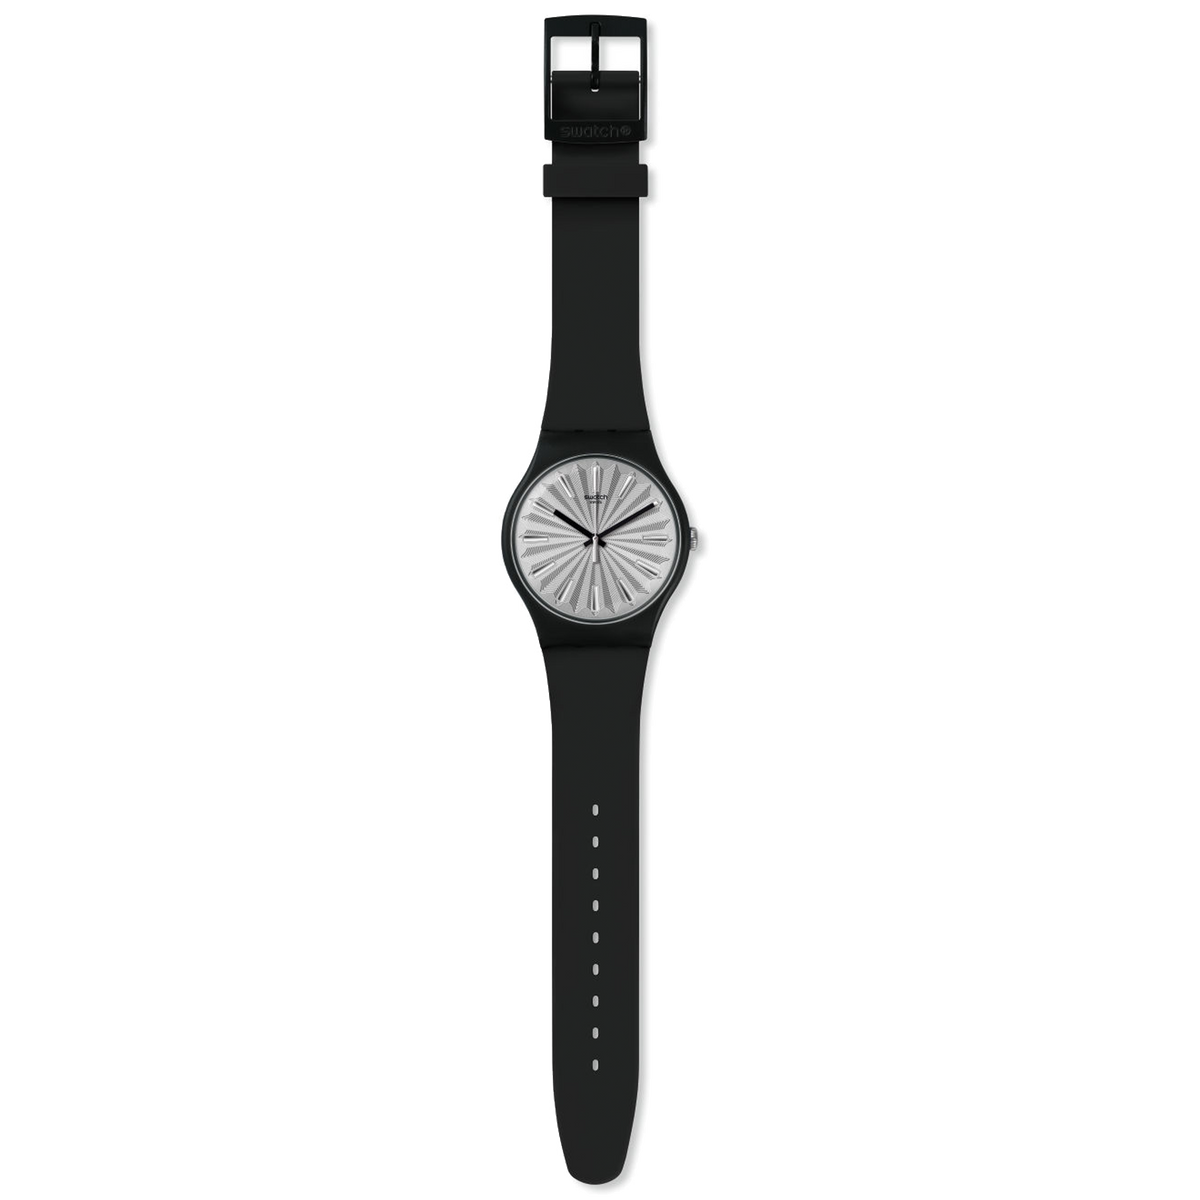 Swatch Watch 41mm - Silver Shield